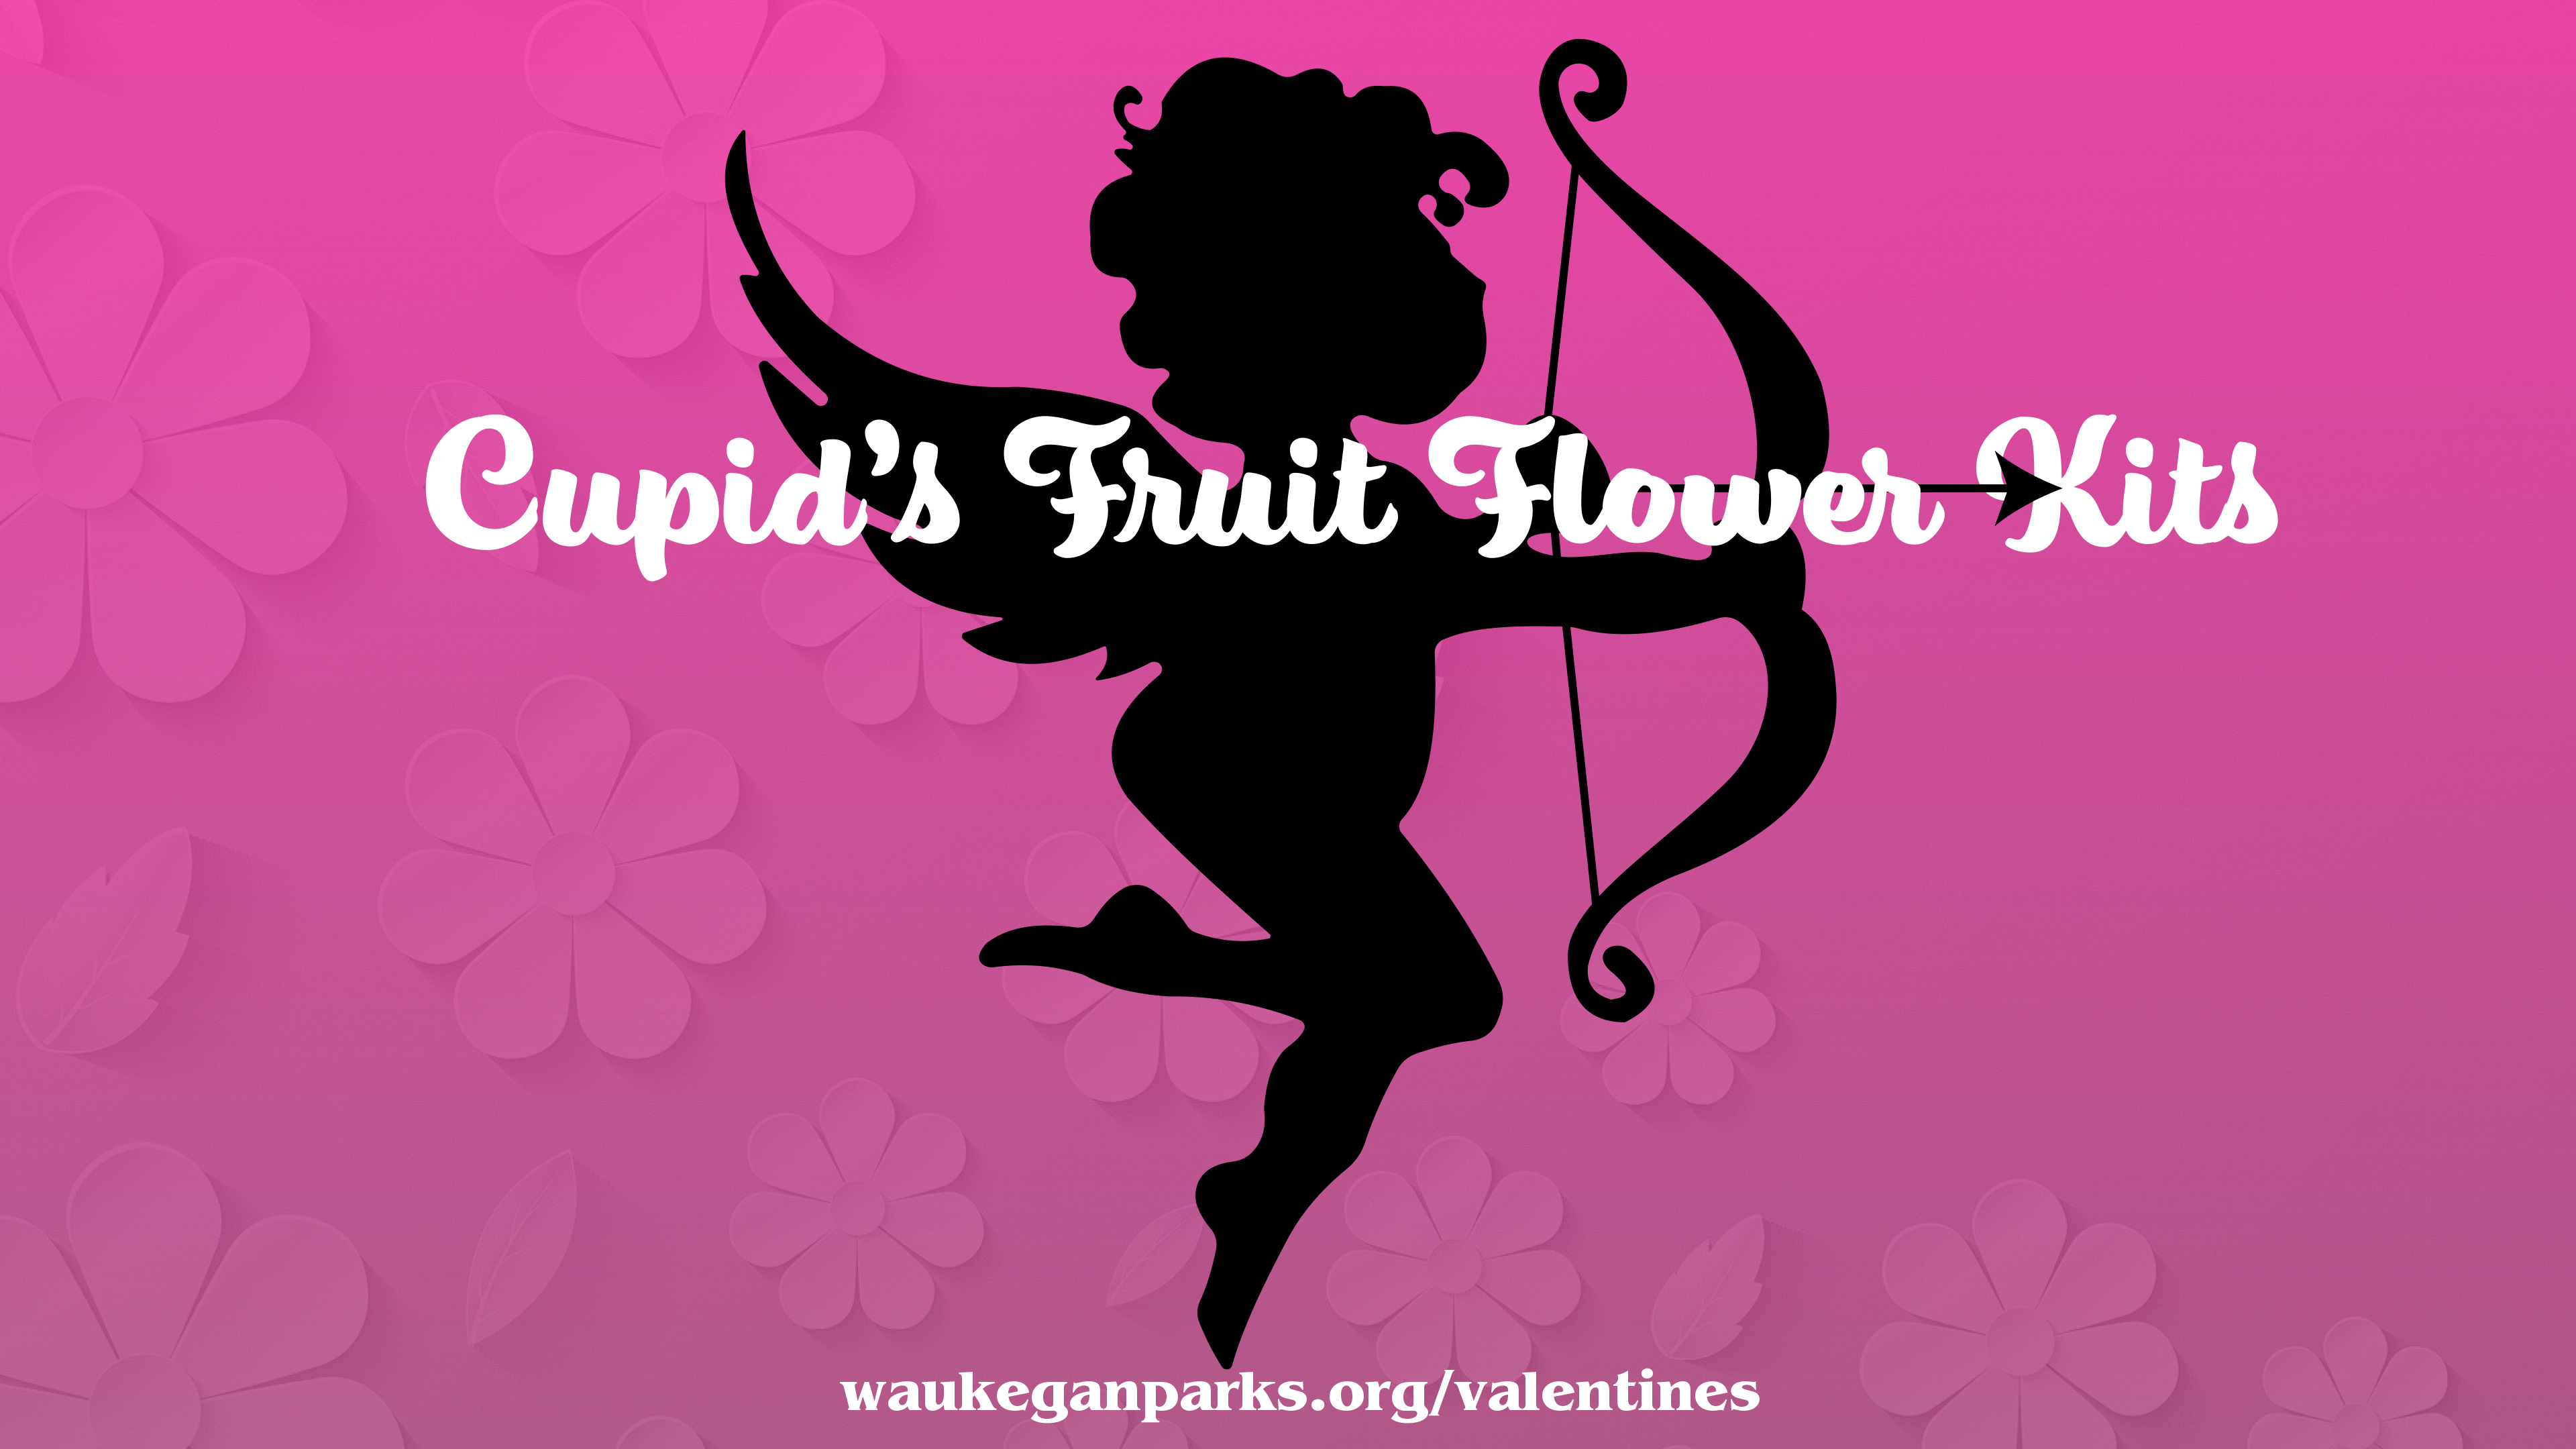 Cupid's Fruit Flower Kits